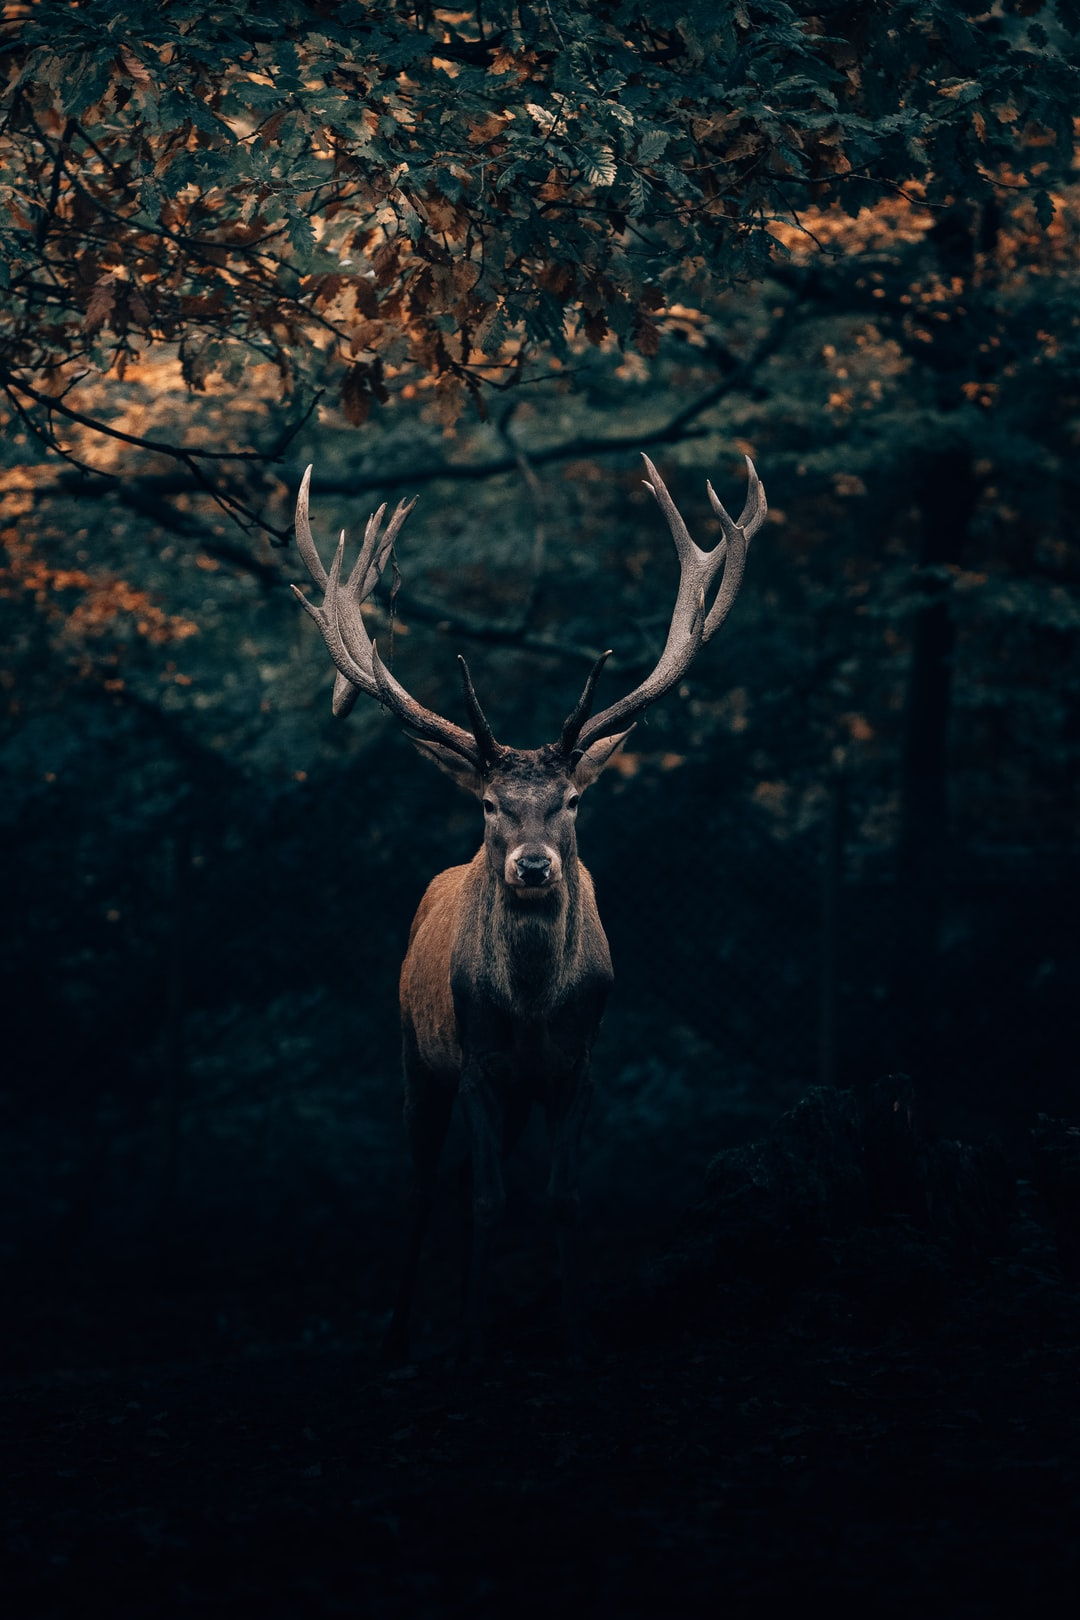 Your Majesty, the King of Teutoburg Forest! 🦌